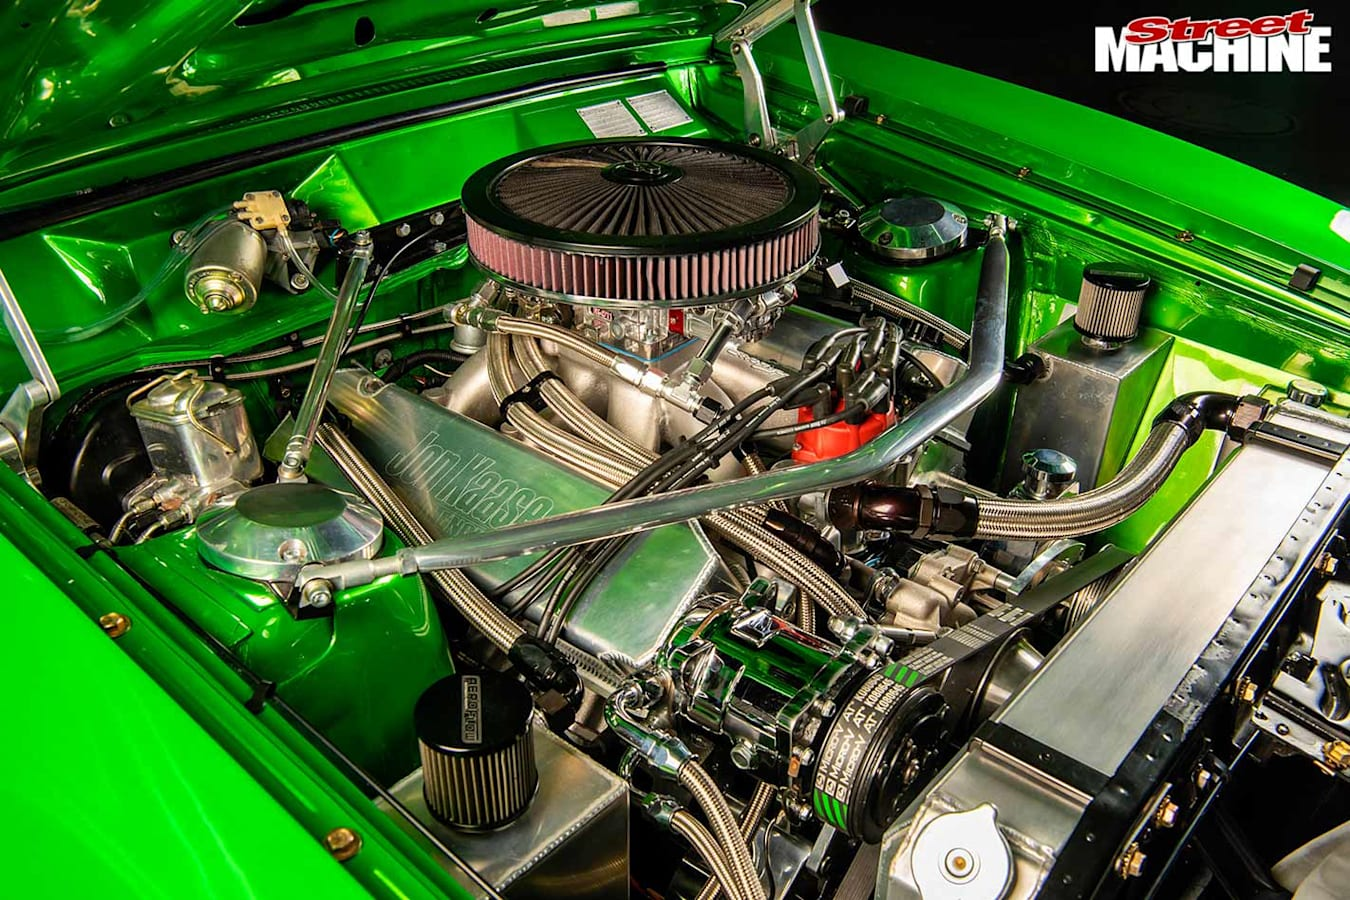 Ford Falcon XA coupe engine bay